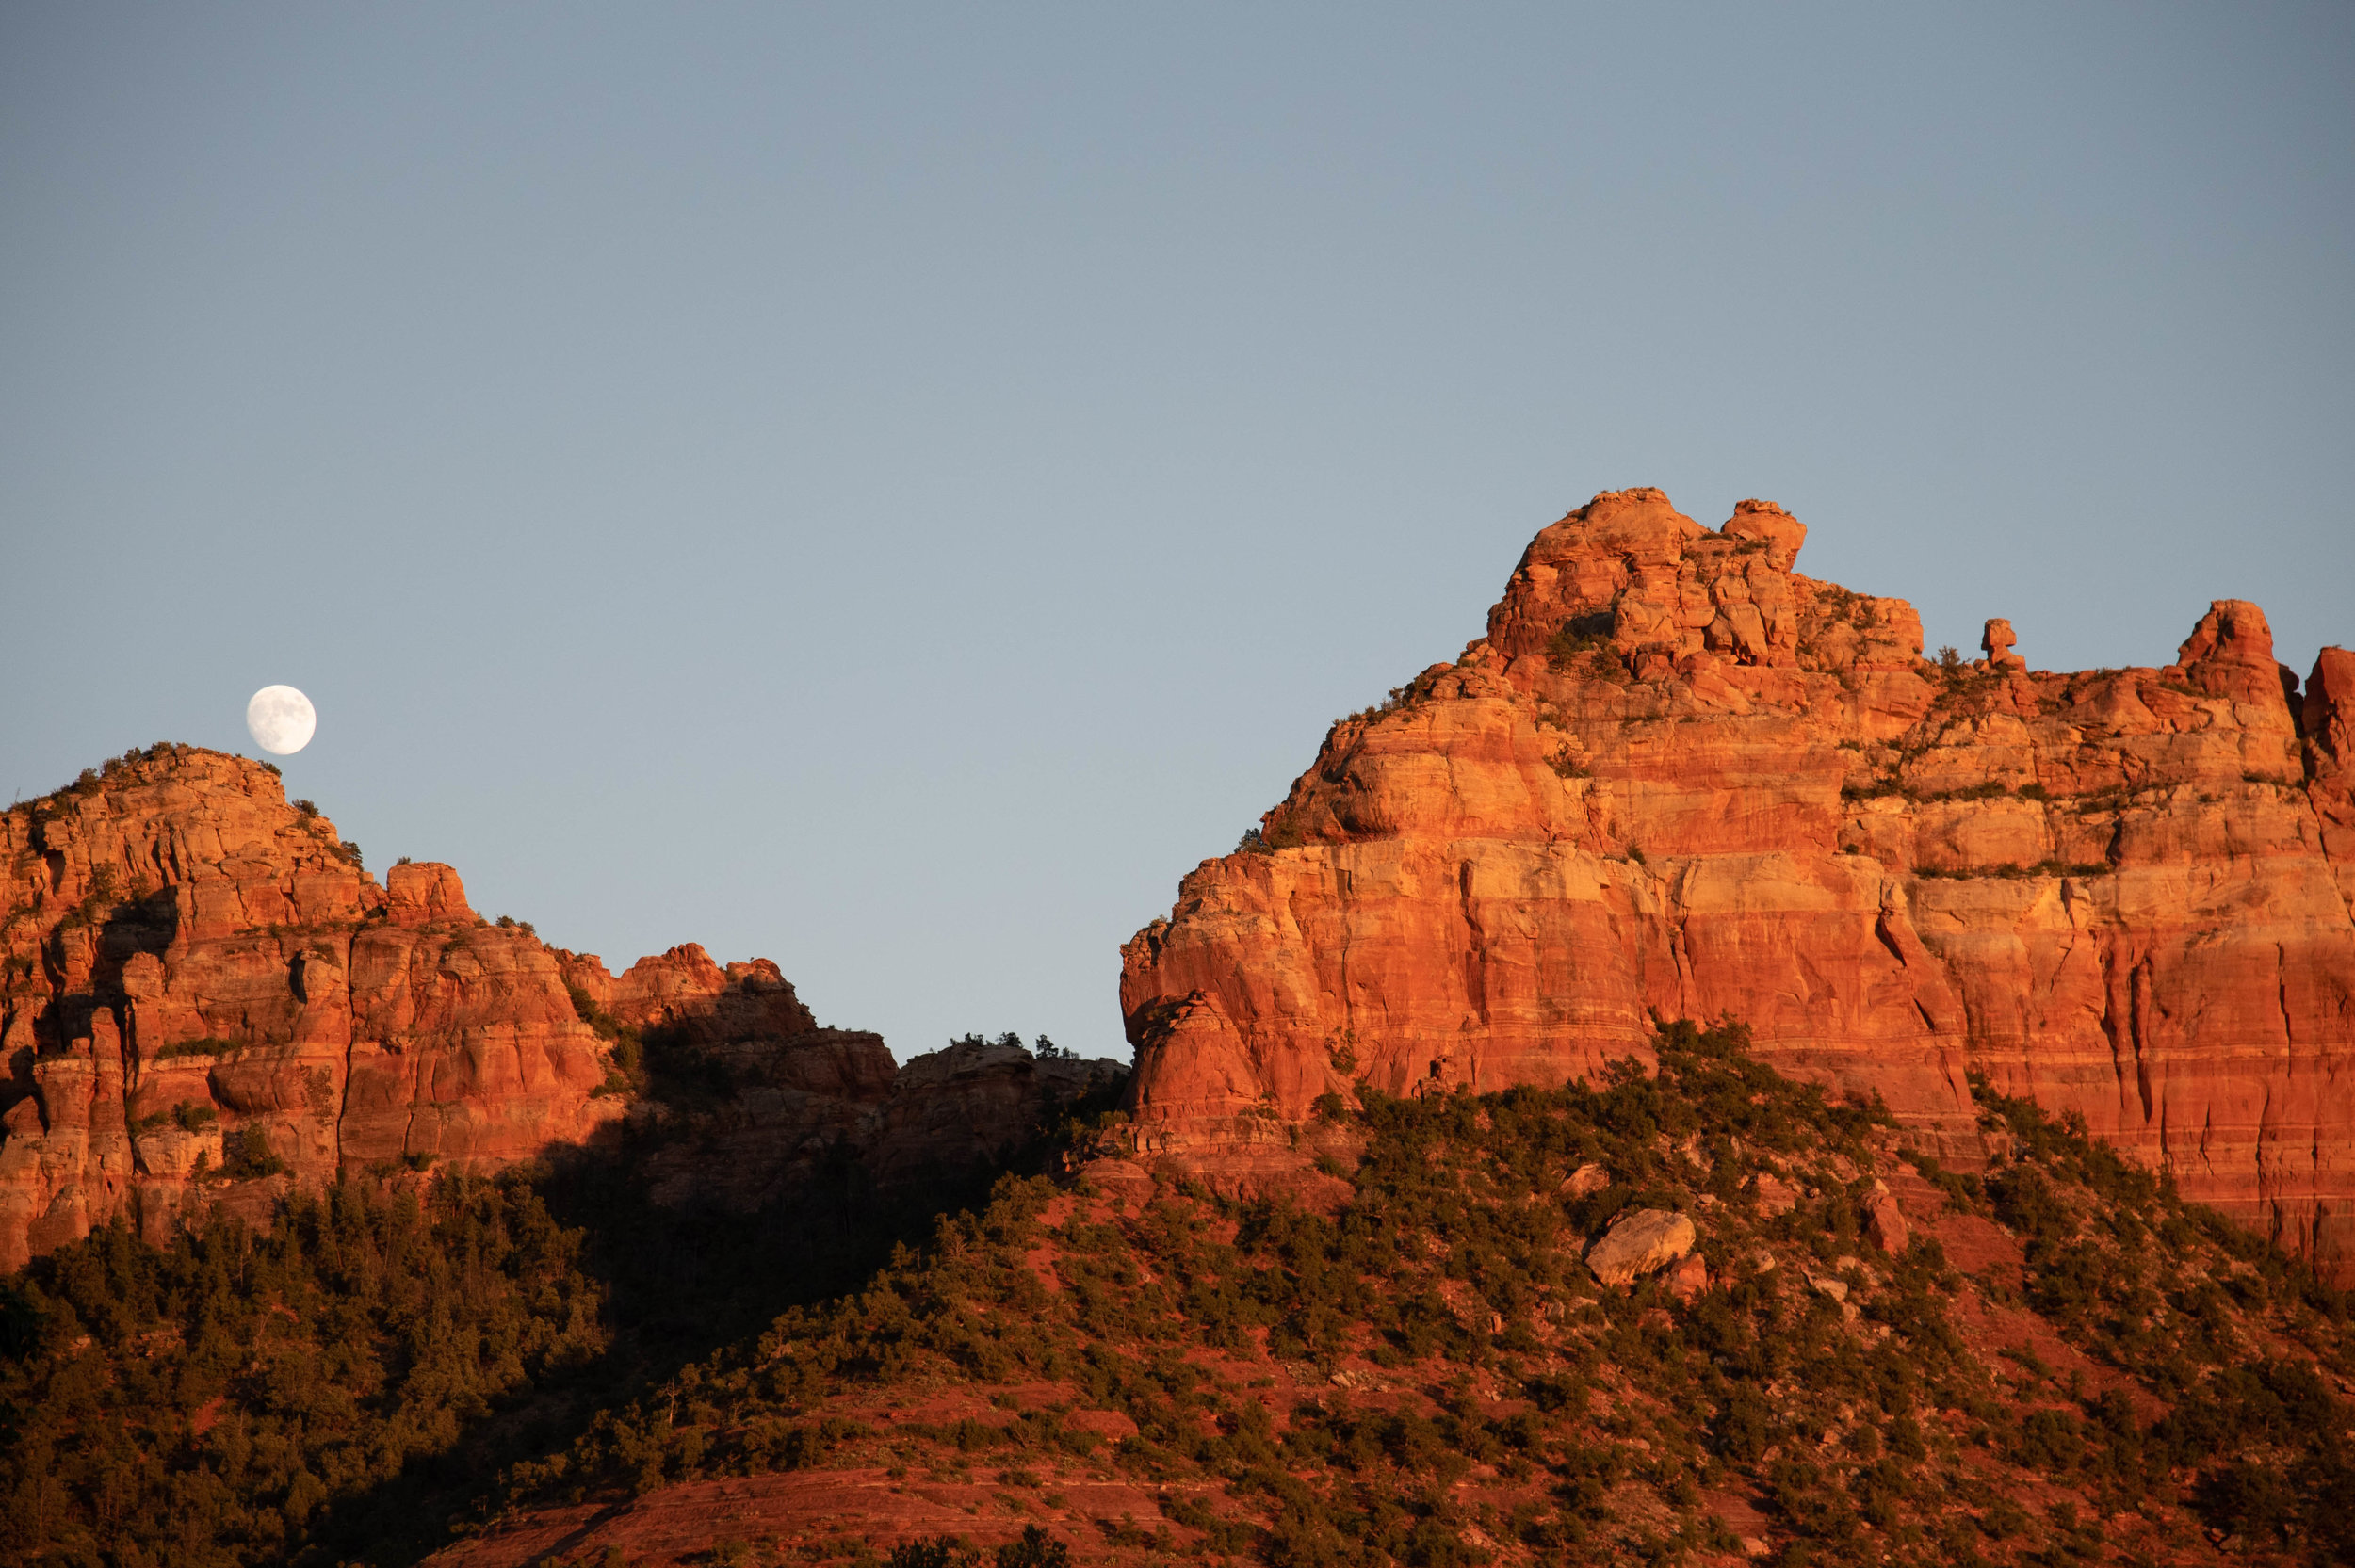 Moon rising at sunset over red rocks